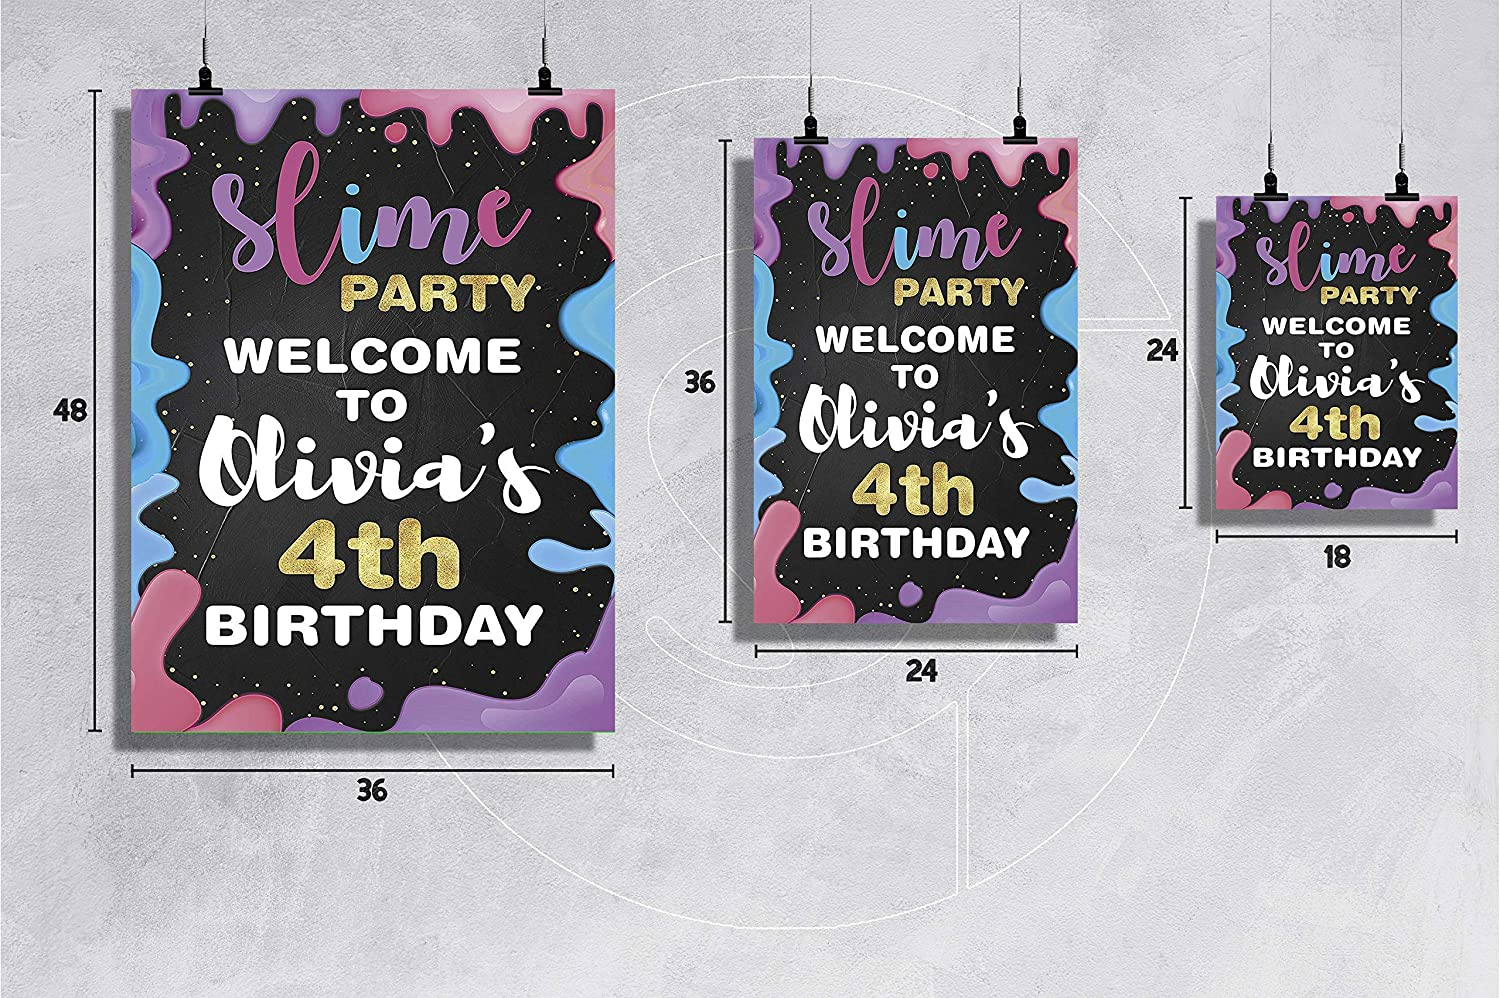 Birthday Party Slime Birthday Party Welcome Sign Size 24x18 Happy Birthday Colorful Birthday Party Decor Welcome Sign Fun Color Party Design Slime Party Decor 36x24 and 48x36 Poster for Kids